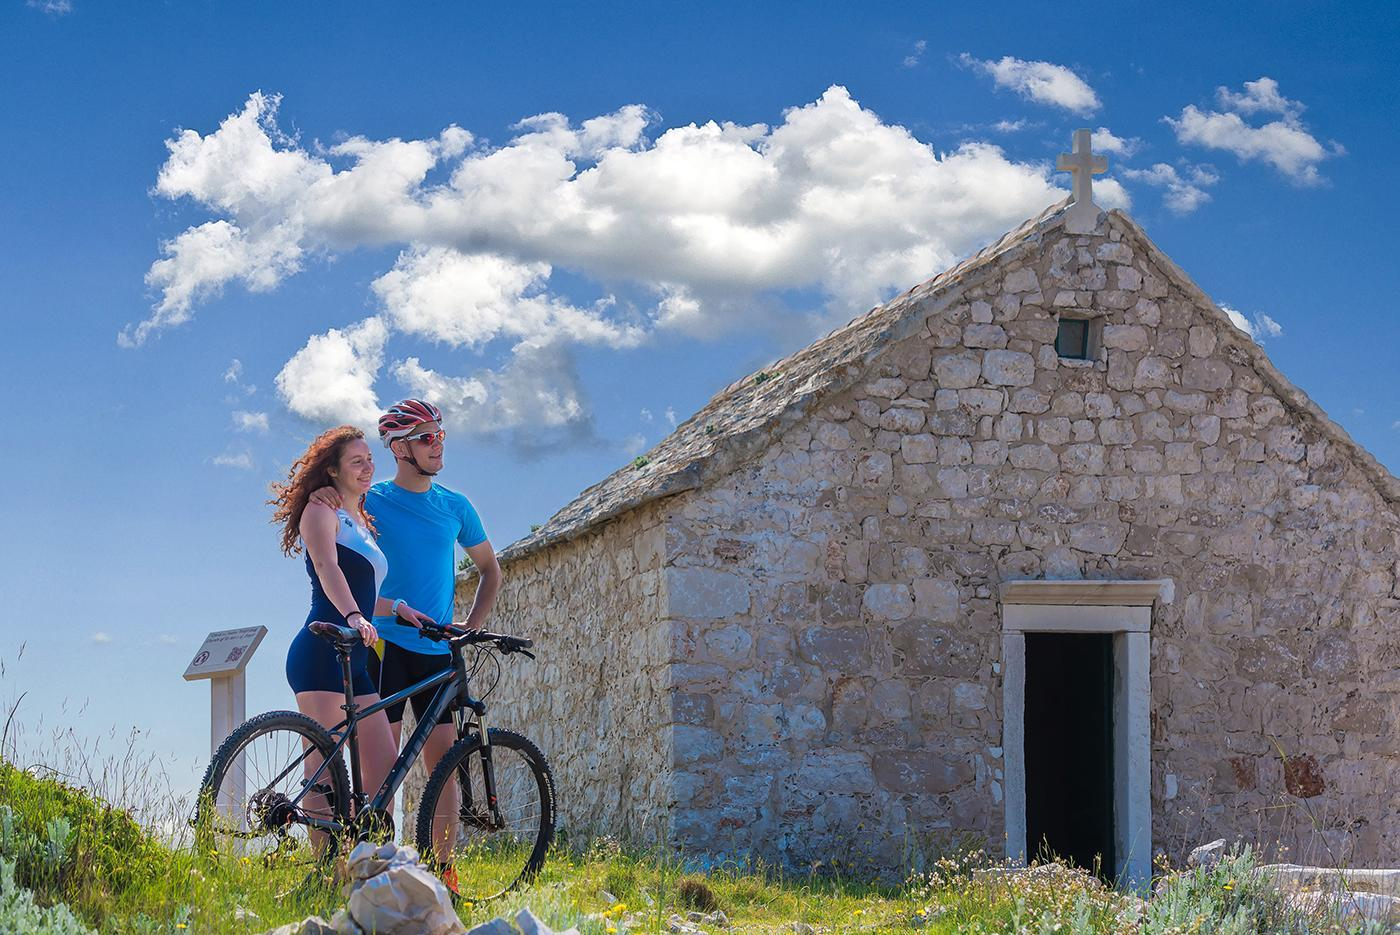 Spending your vacation in Dalamatia: Having fun in the rural Dalmatian countryside